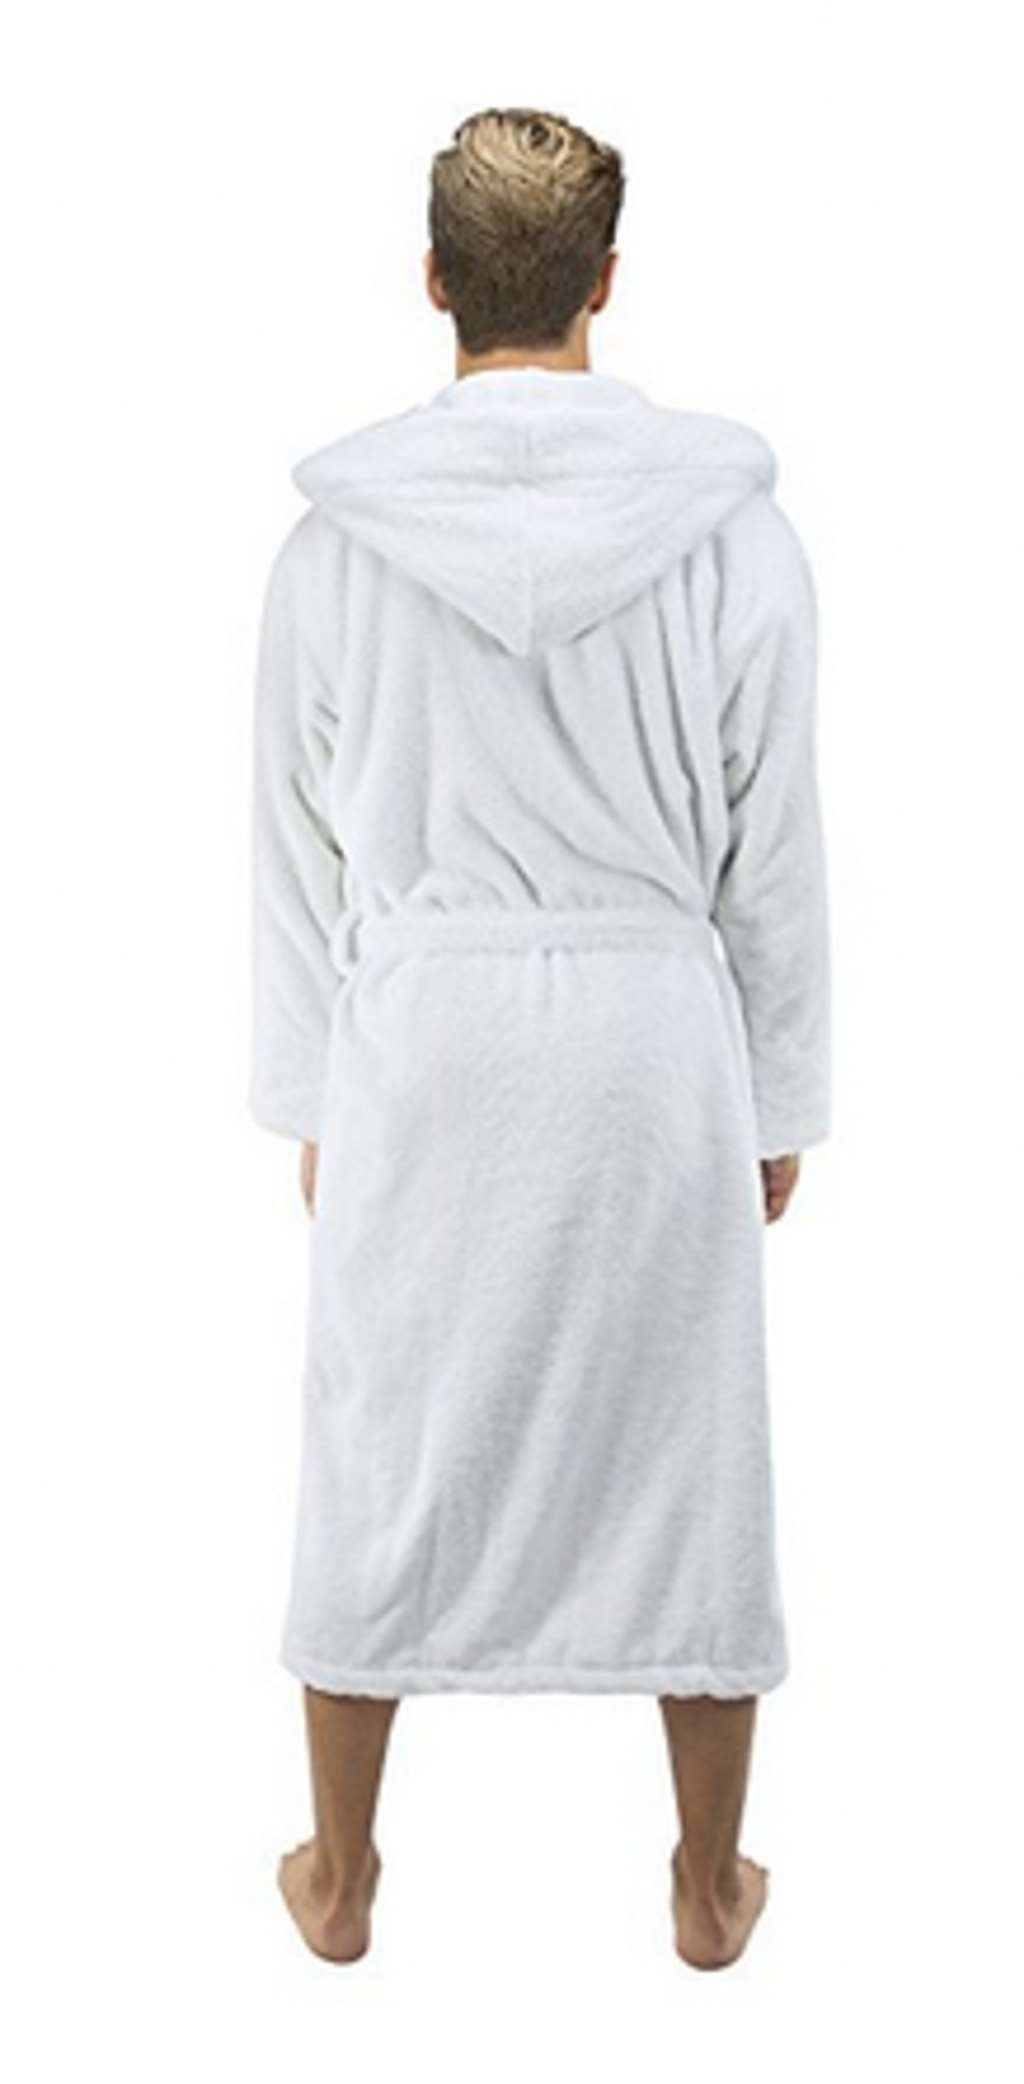 56b5d2213a Comfy Robes - Comfy Robes Men s Deluxe 20 oz. Turkish Cotton Hooded Bathrobe